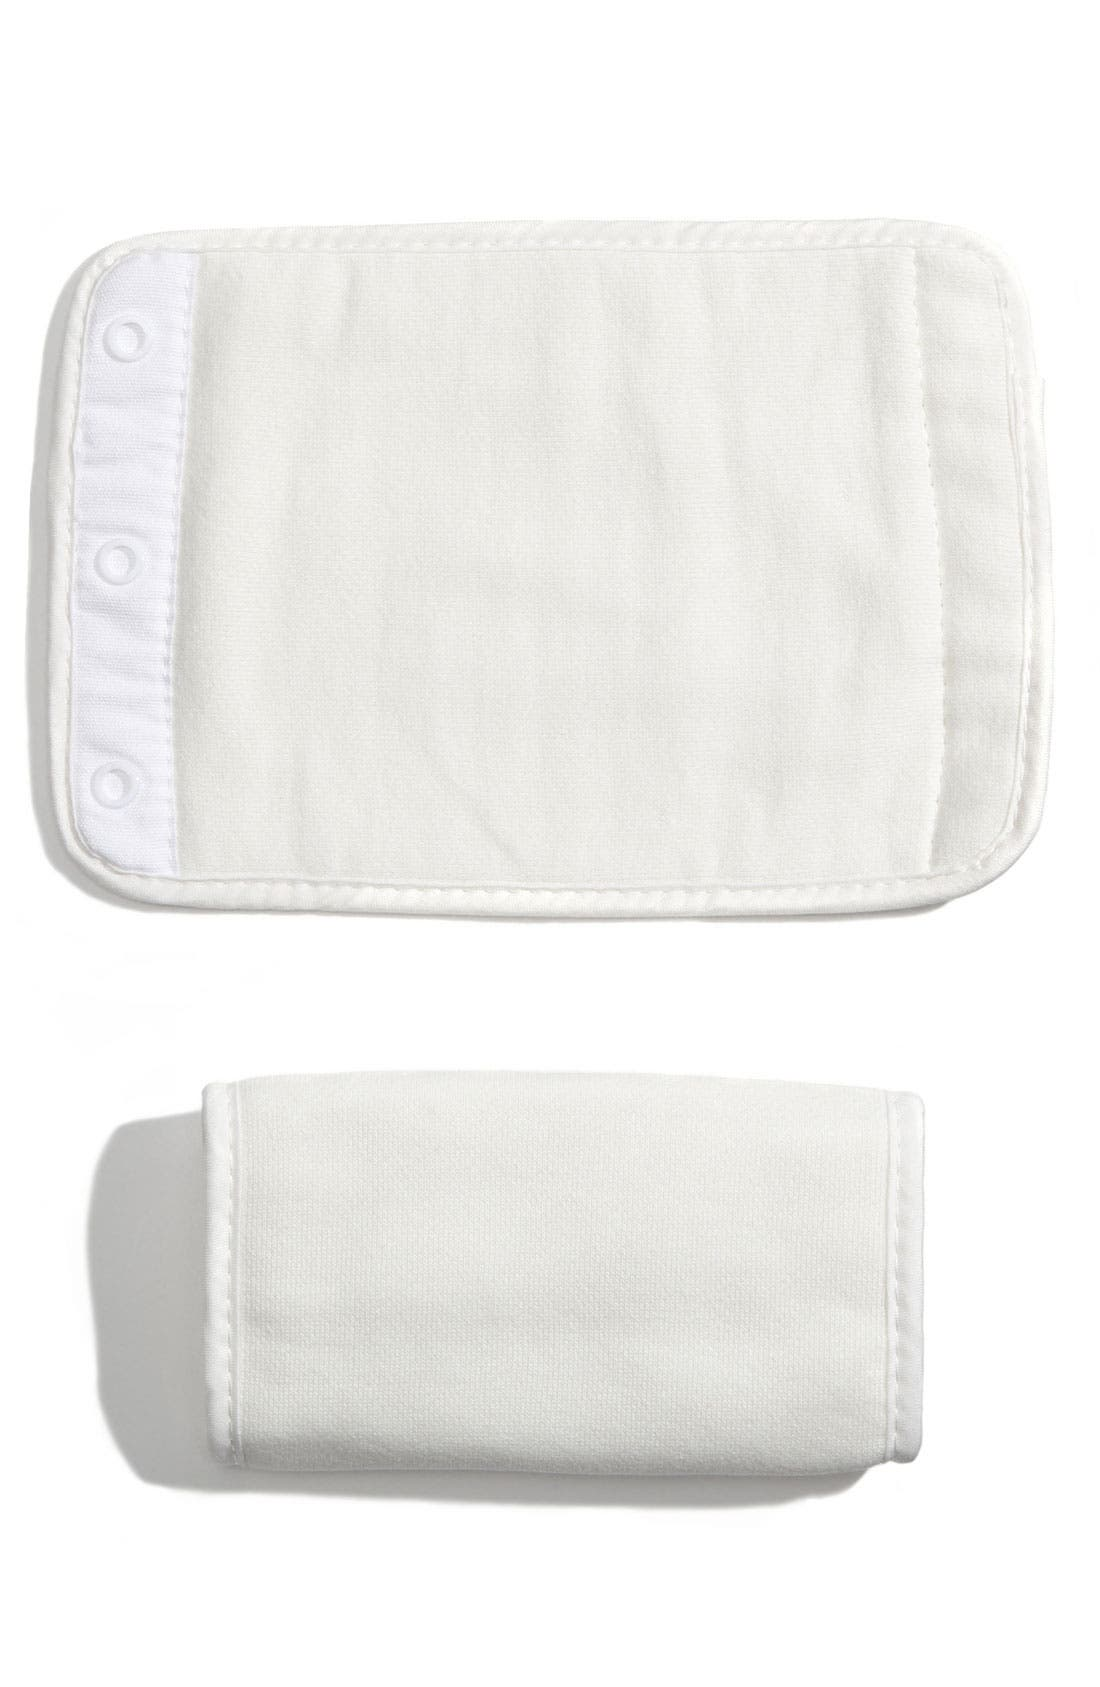 Main Image - ERGObaby Teething Pads (Set of 2)